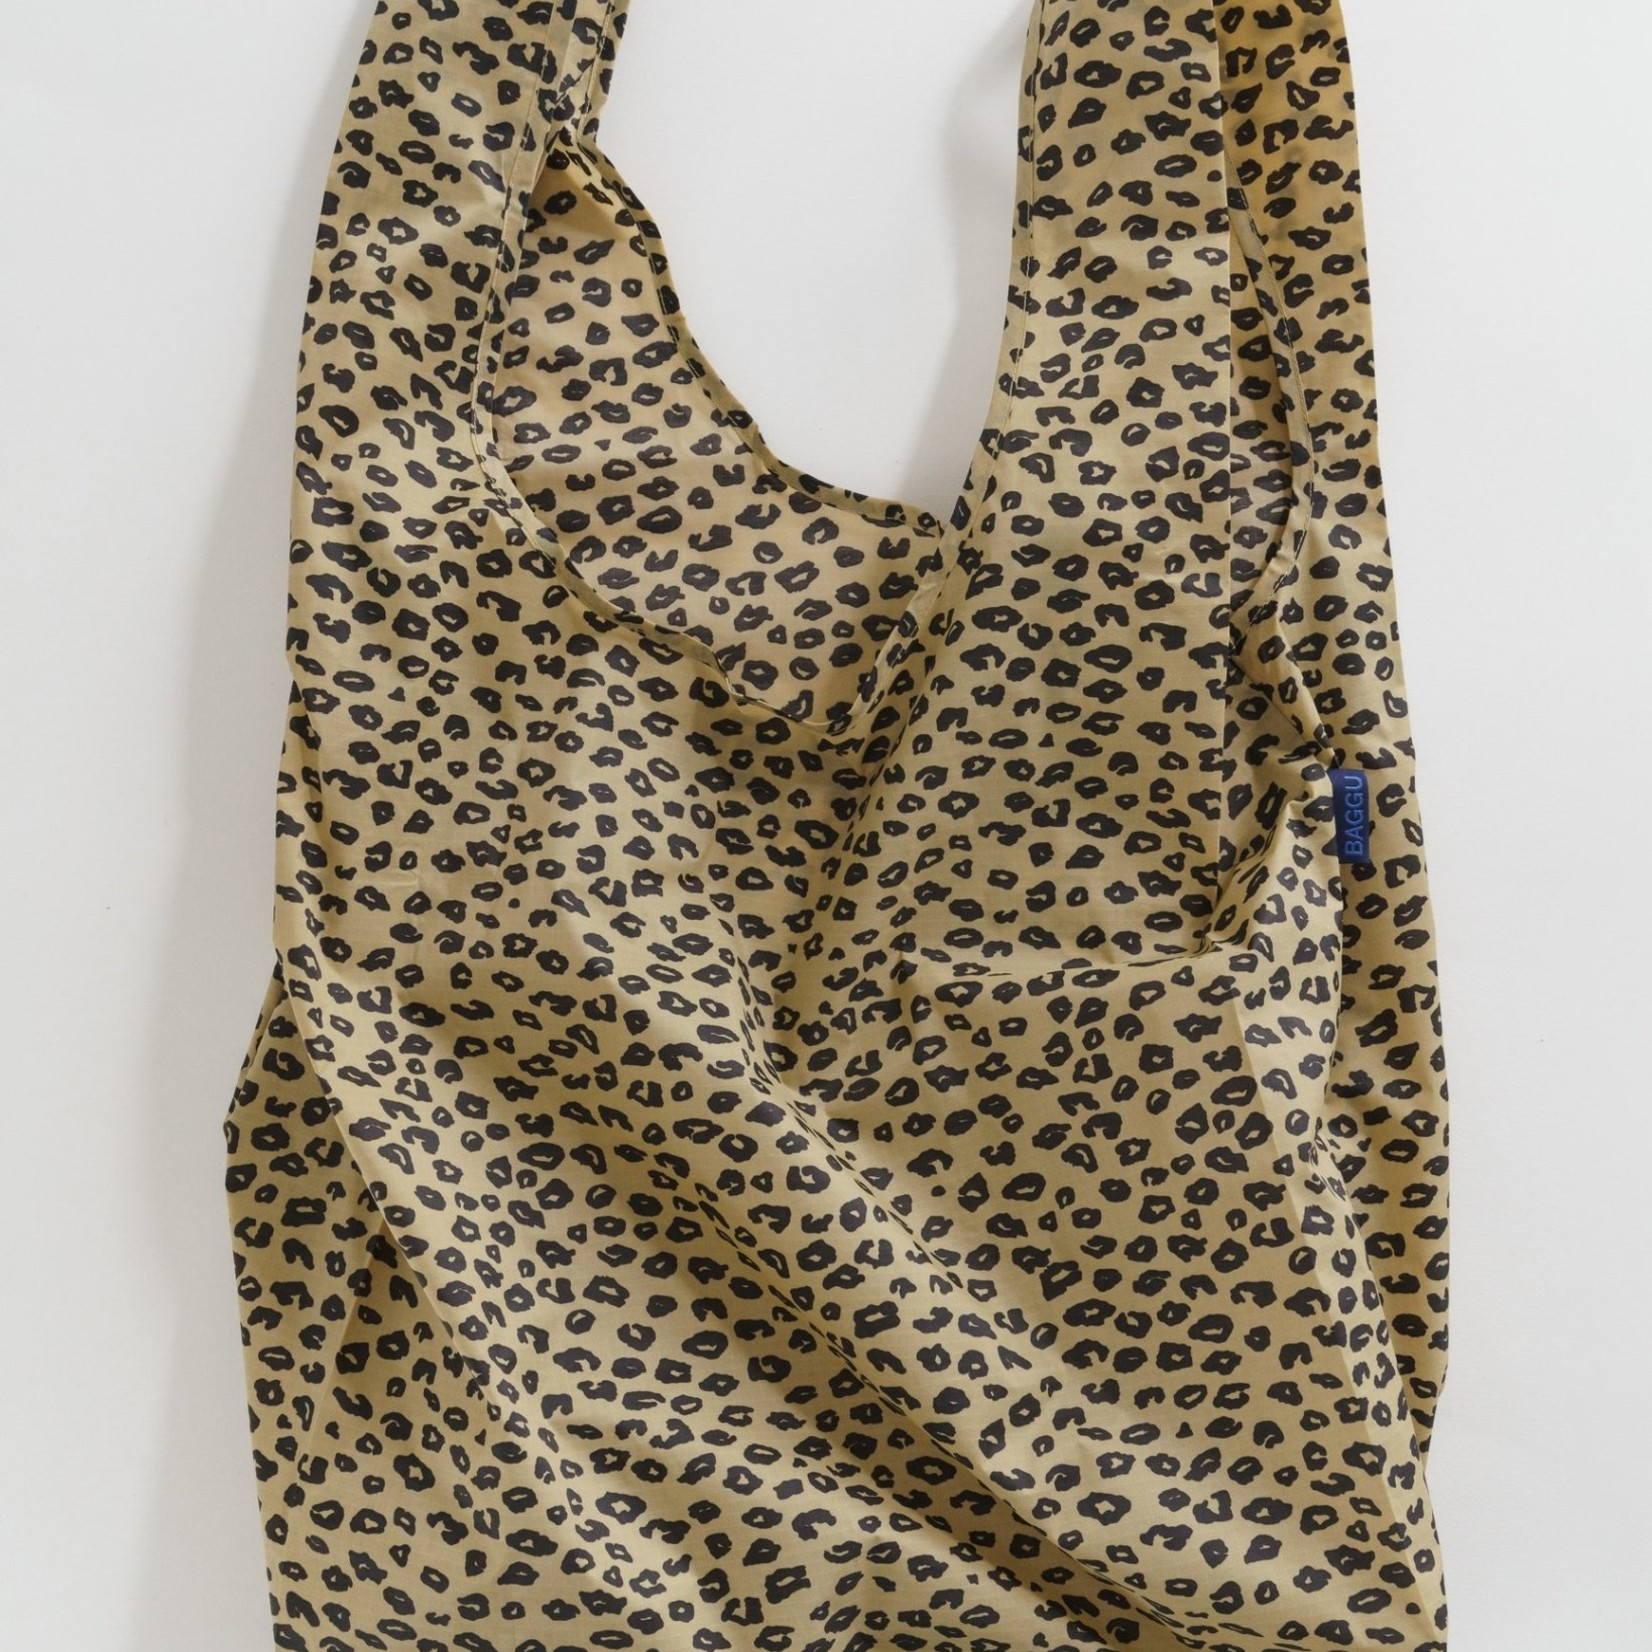 Baggu Baggu Reusable Bag Big Honey Leopard